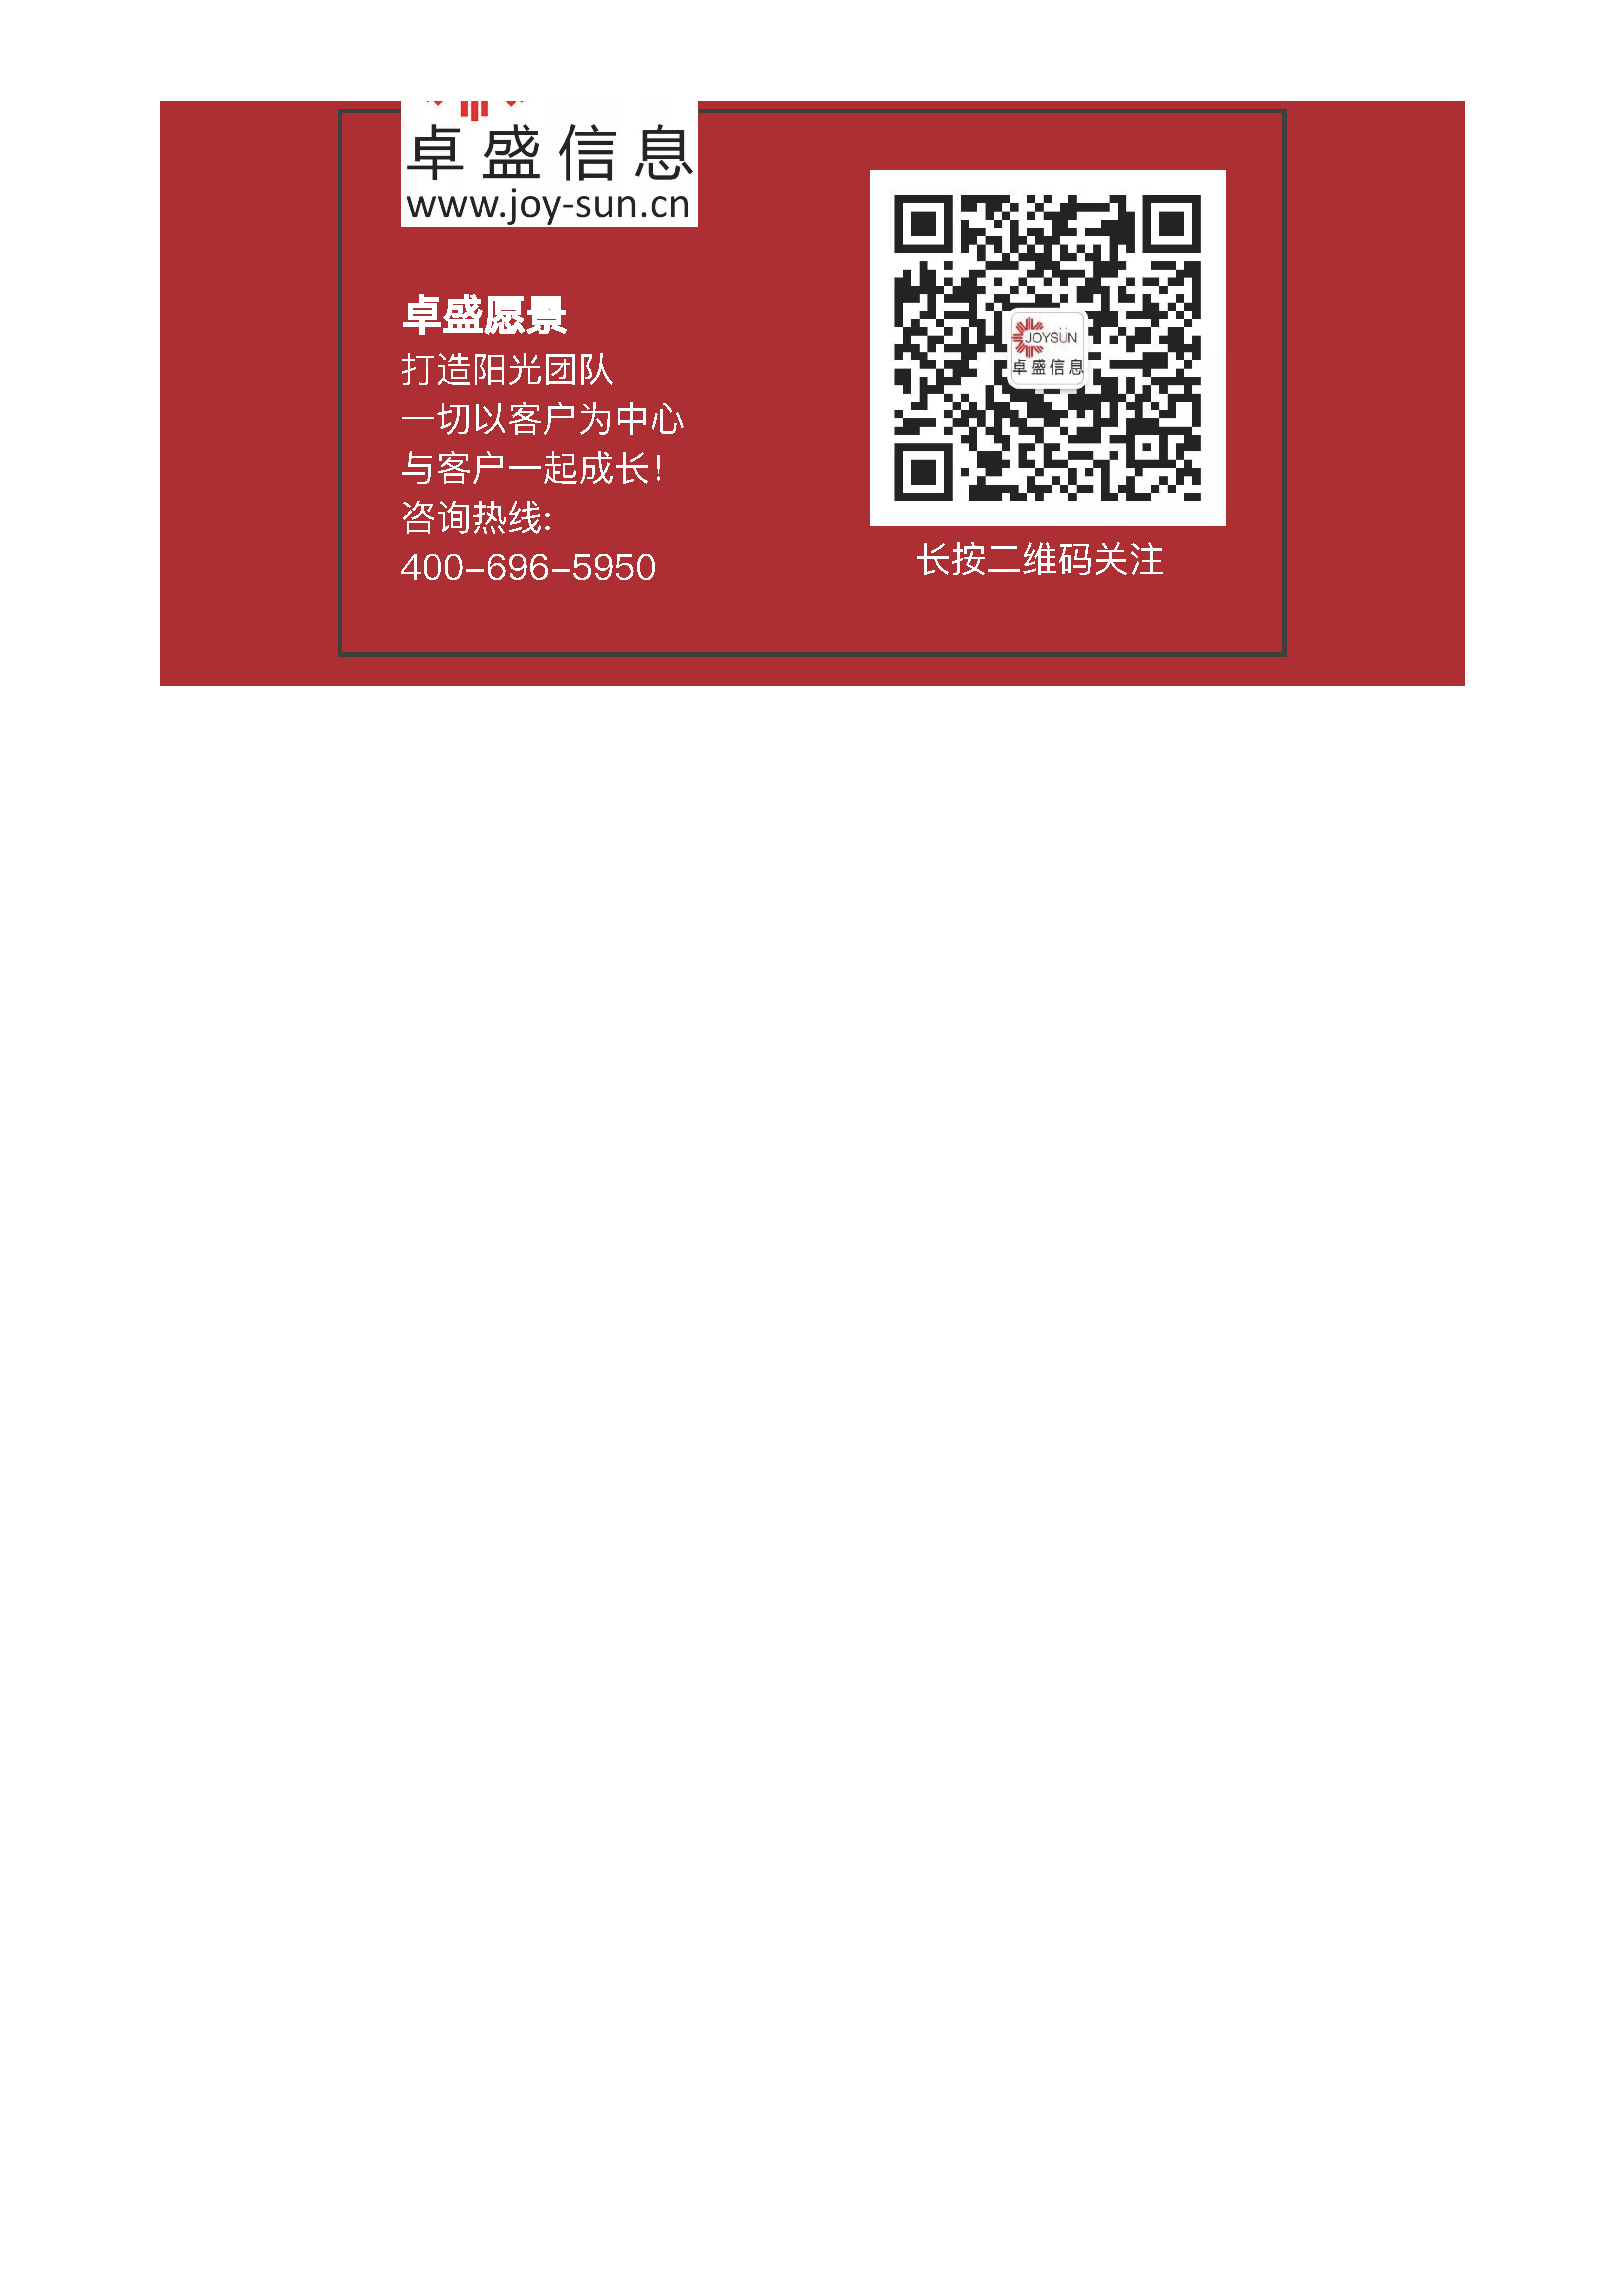 135editor_03041424_60407d0a640ba20210304142410_页面_12.png